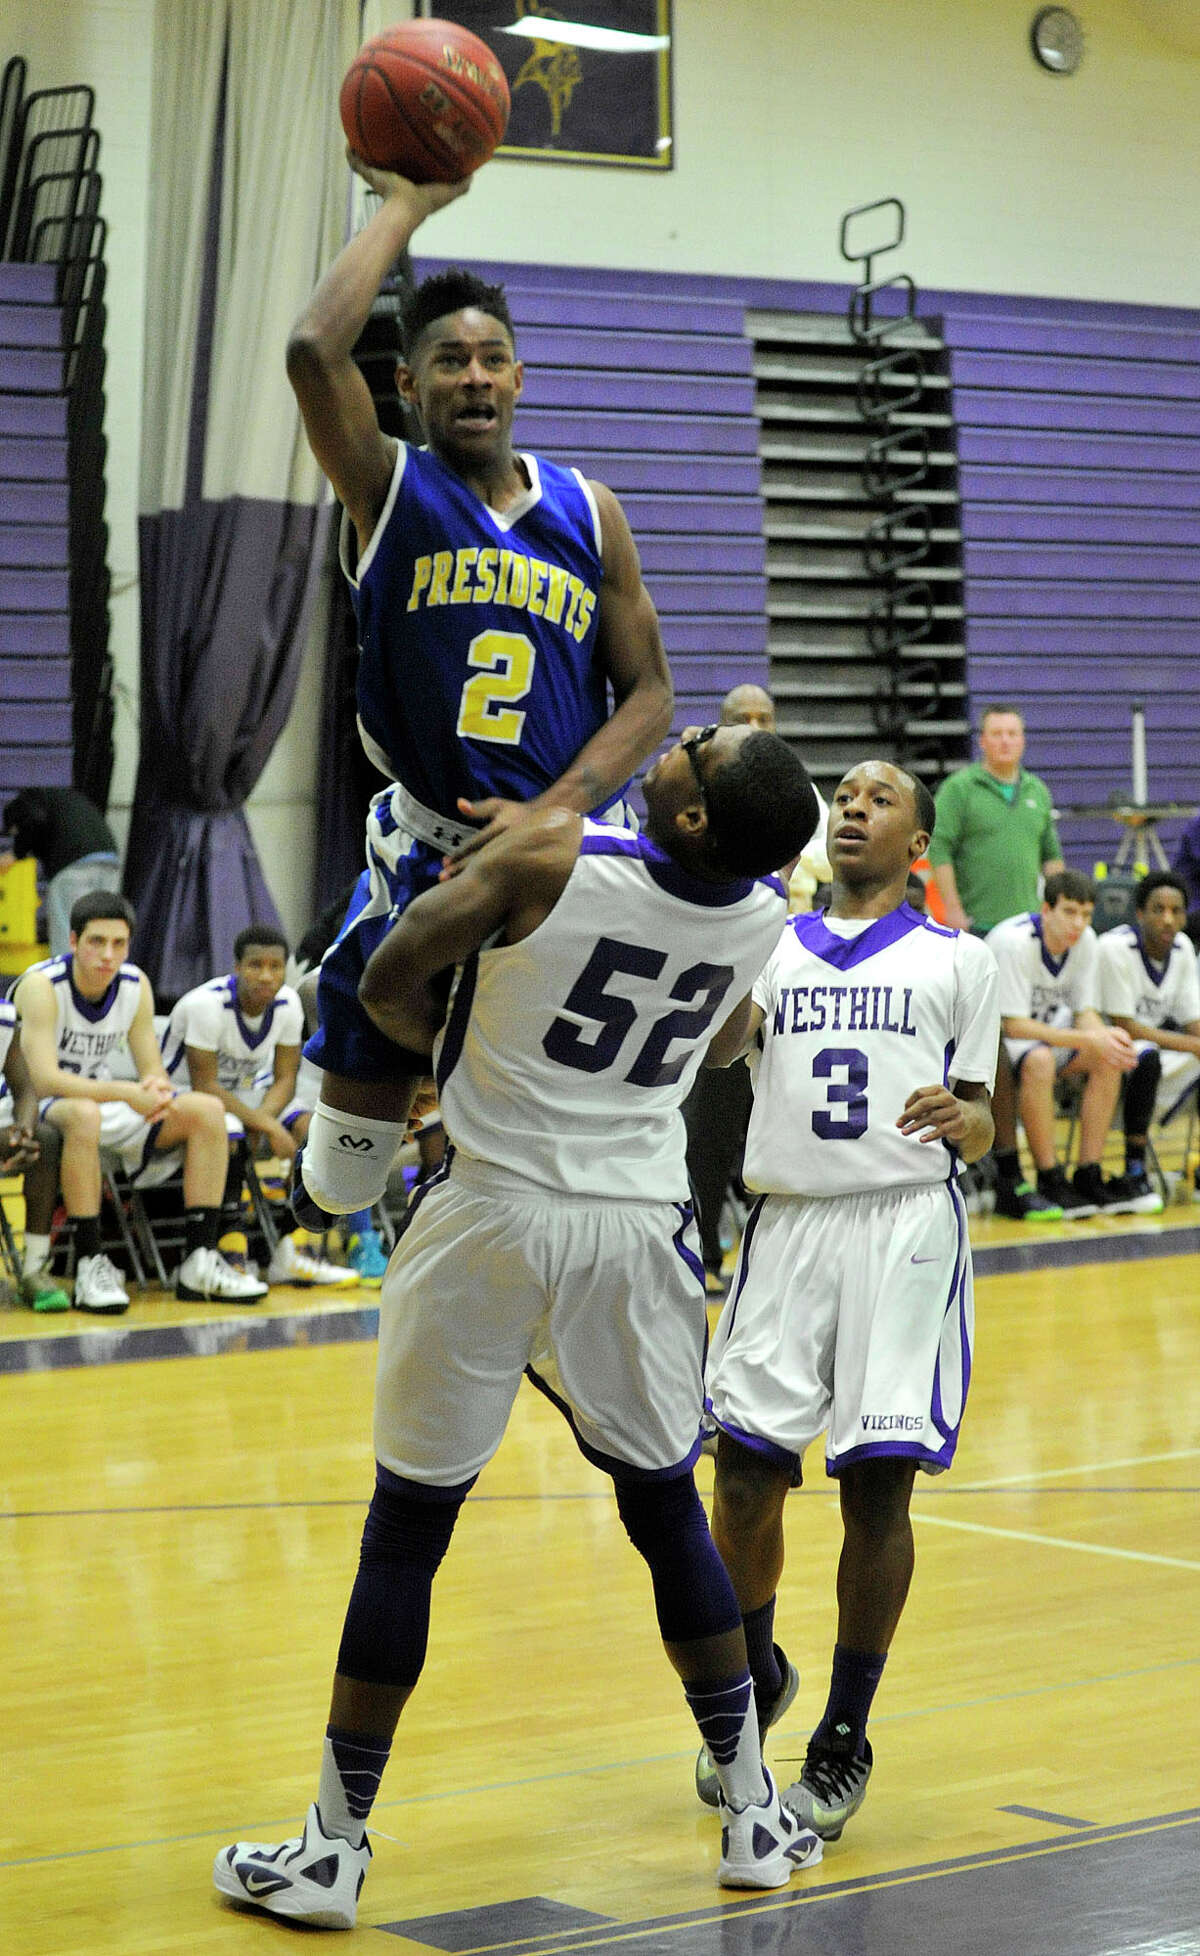 Westhill's Chianta' Holtzclaw takes a charge from Harding's T.J. Killings during their basketball game at Westhill High School in Stamford, Conn., on Tuesday, Jan. 14, 2014. Westhill won, 67-50.